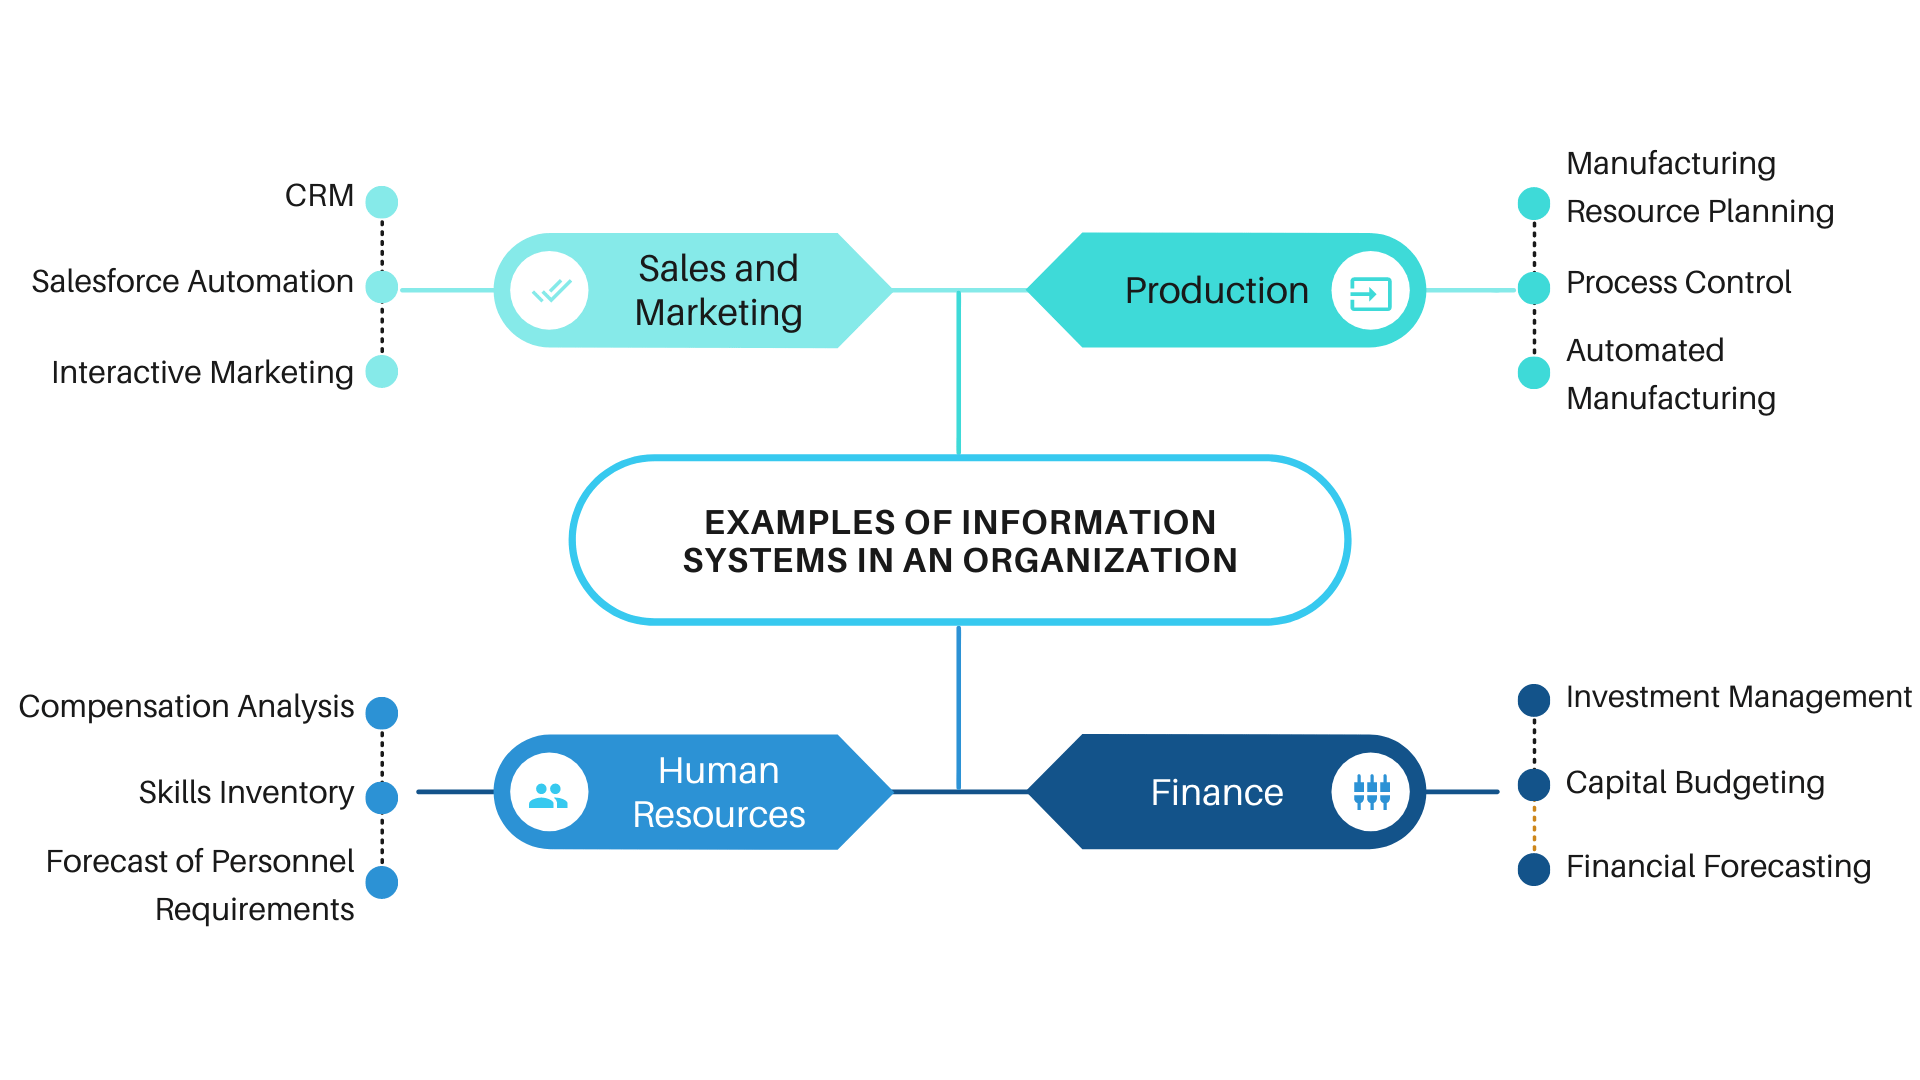 Examples of Information Systems in an Organization